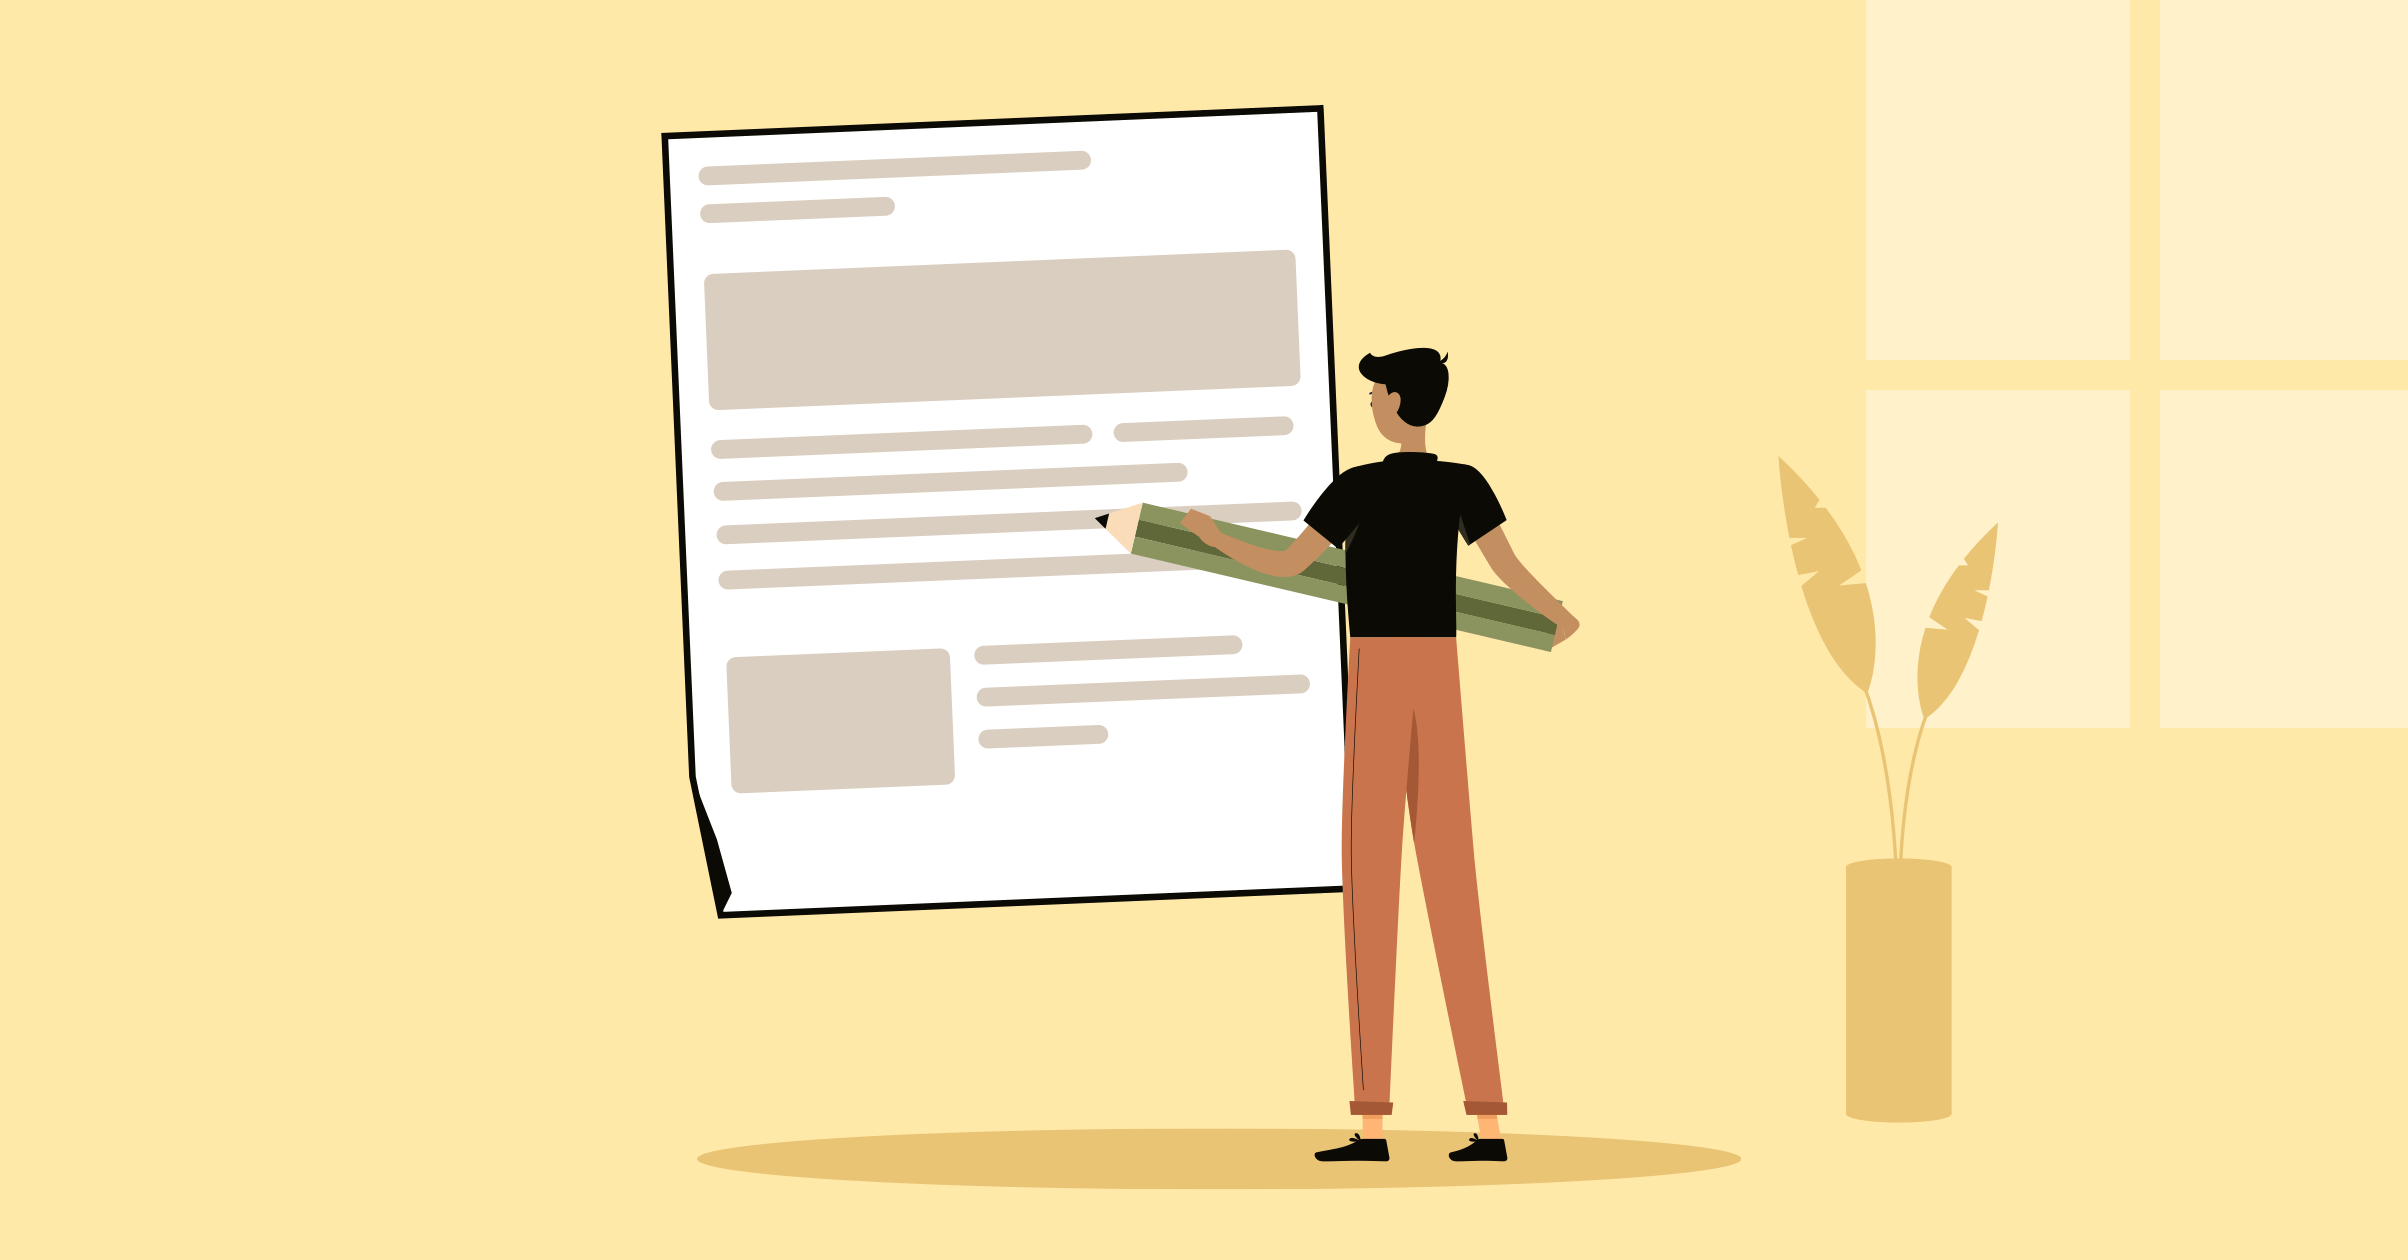 Create proposals that stand out & get signed